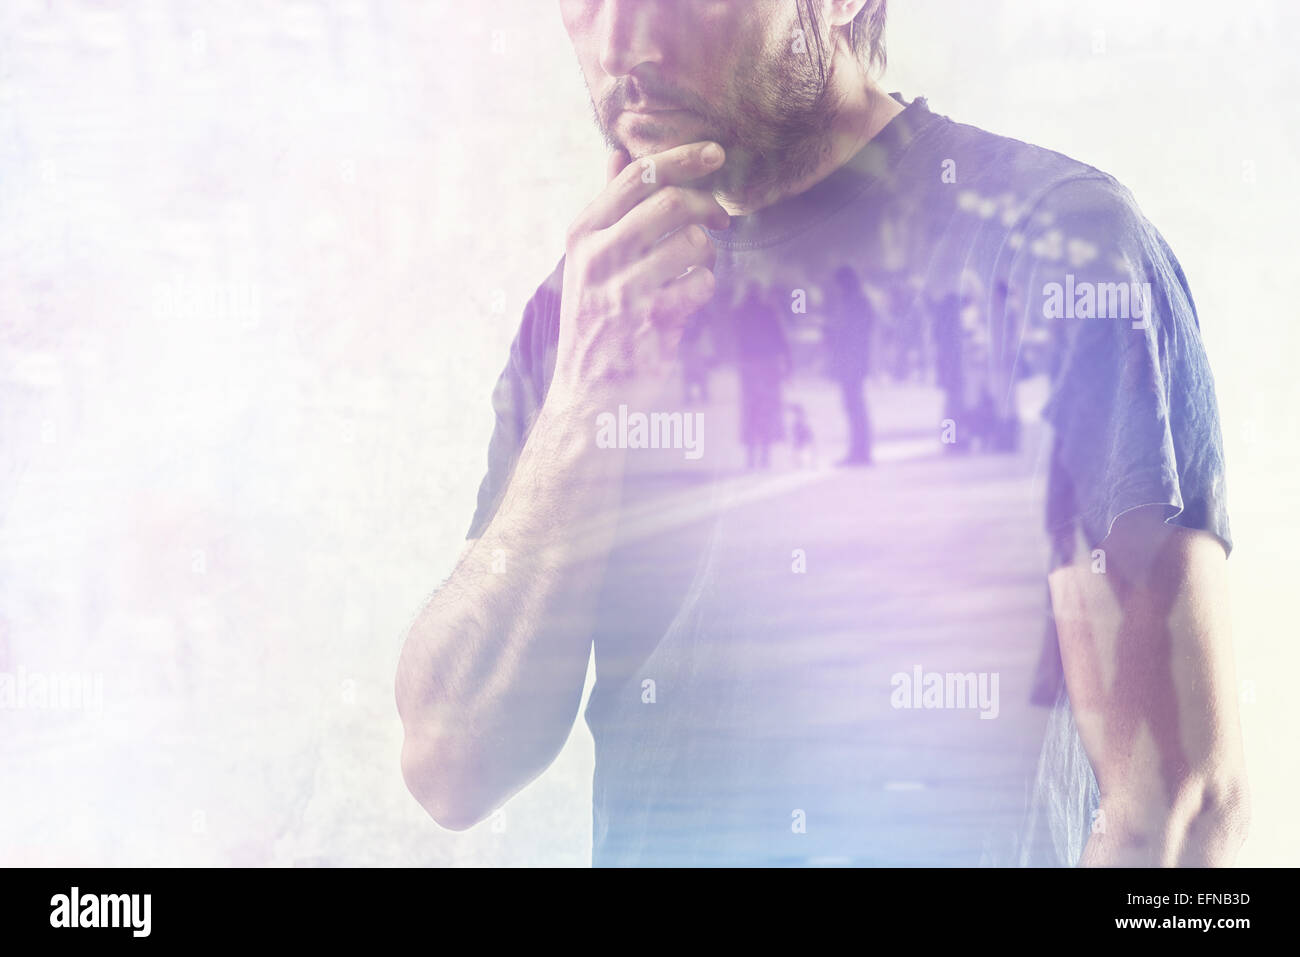 Conceptual Composite Image of Adult Man Remembering Something from his Past, Hand on Chin. - Stock Image